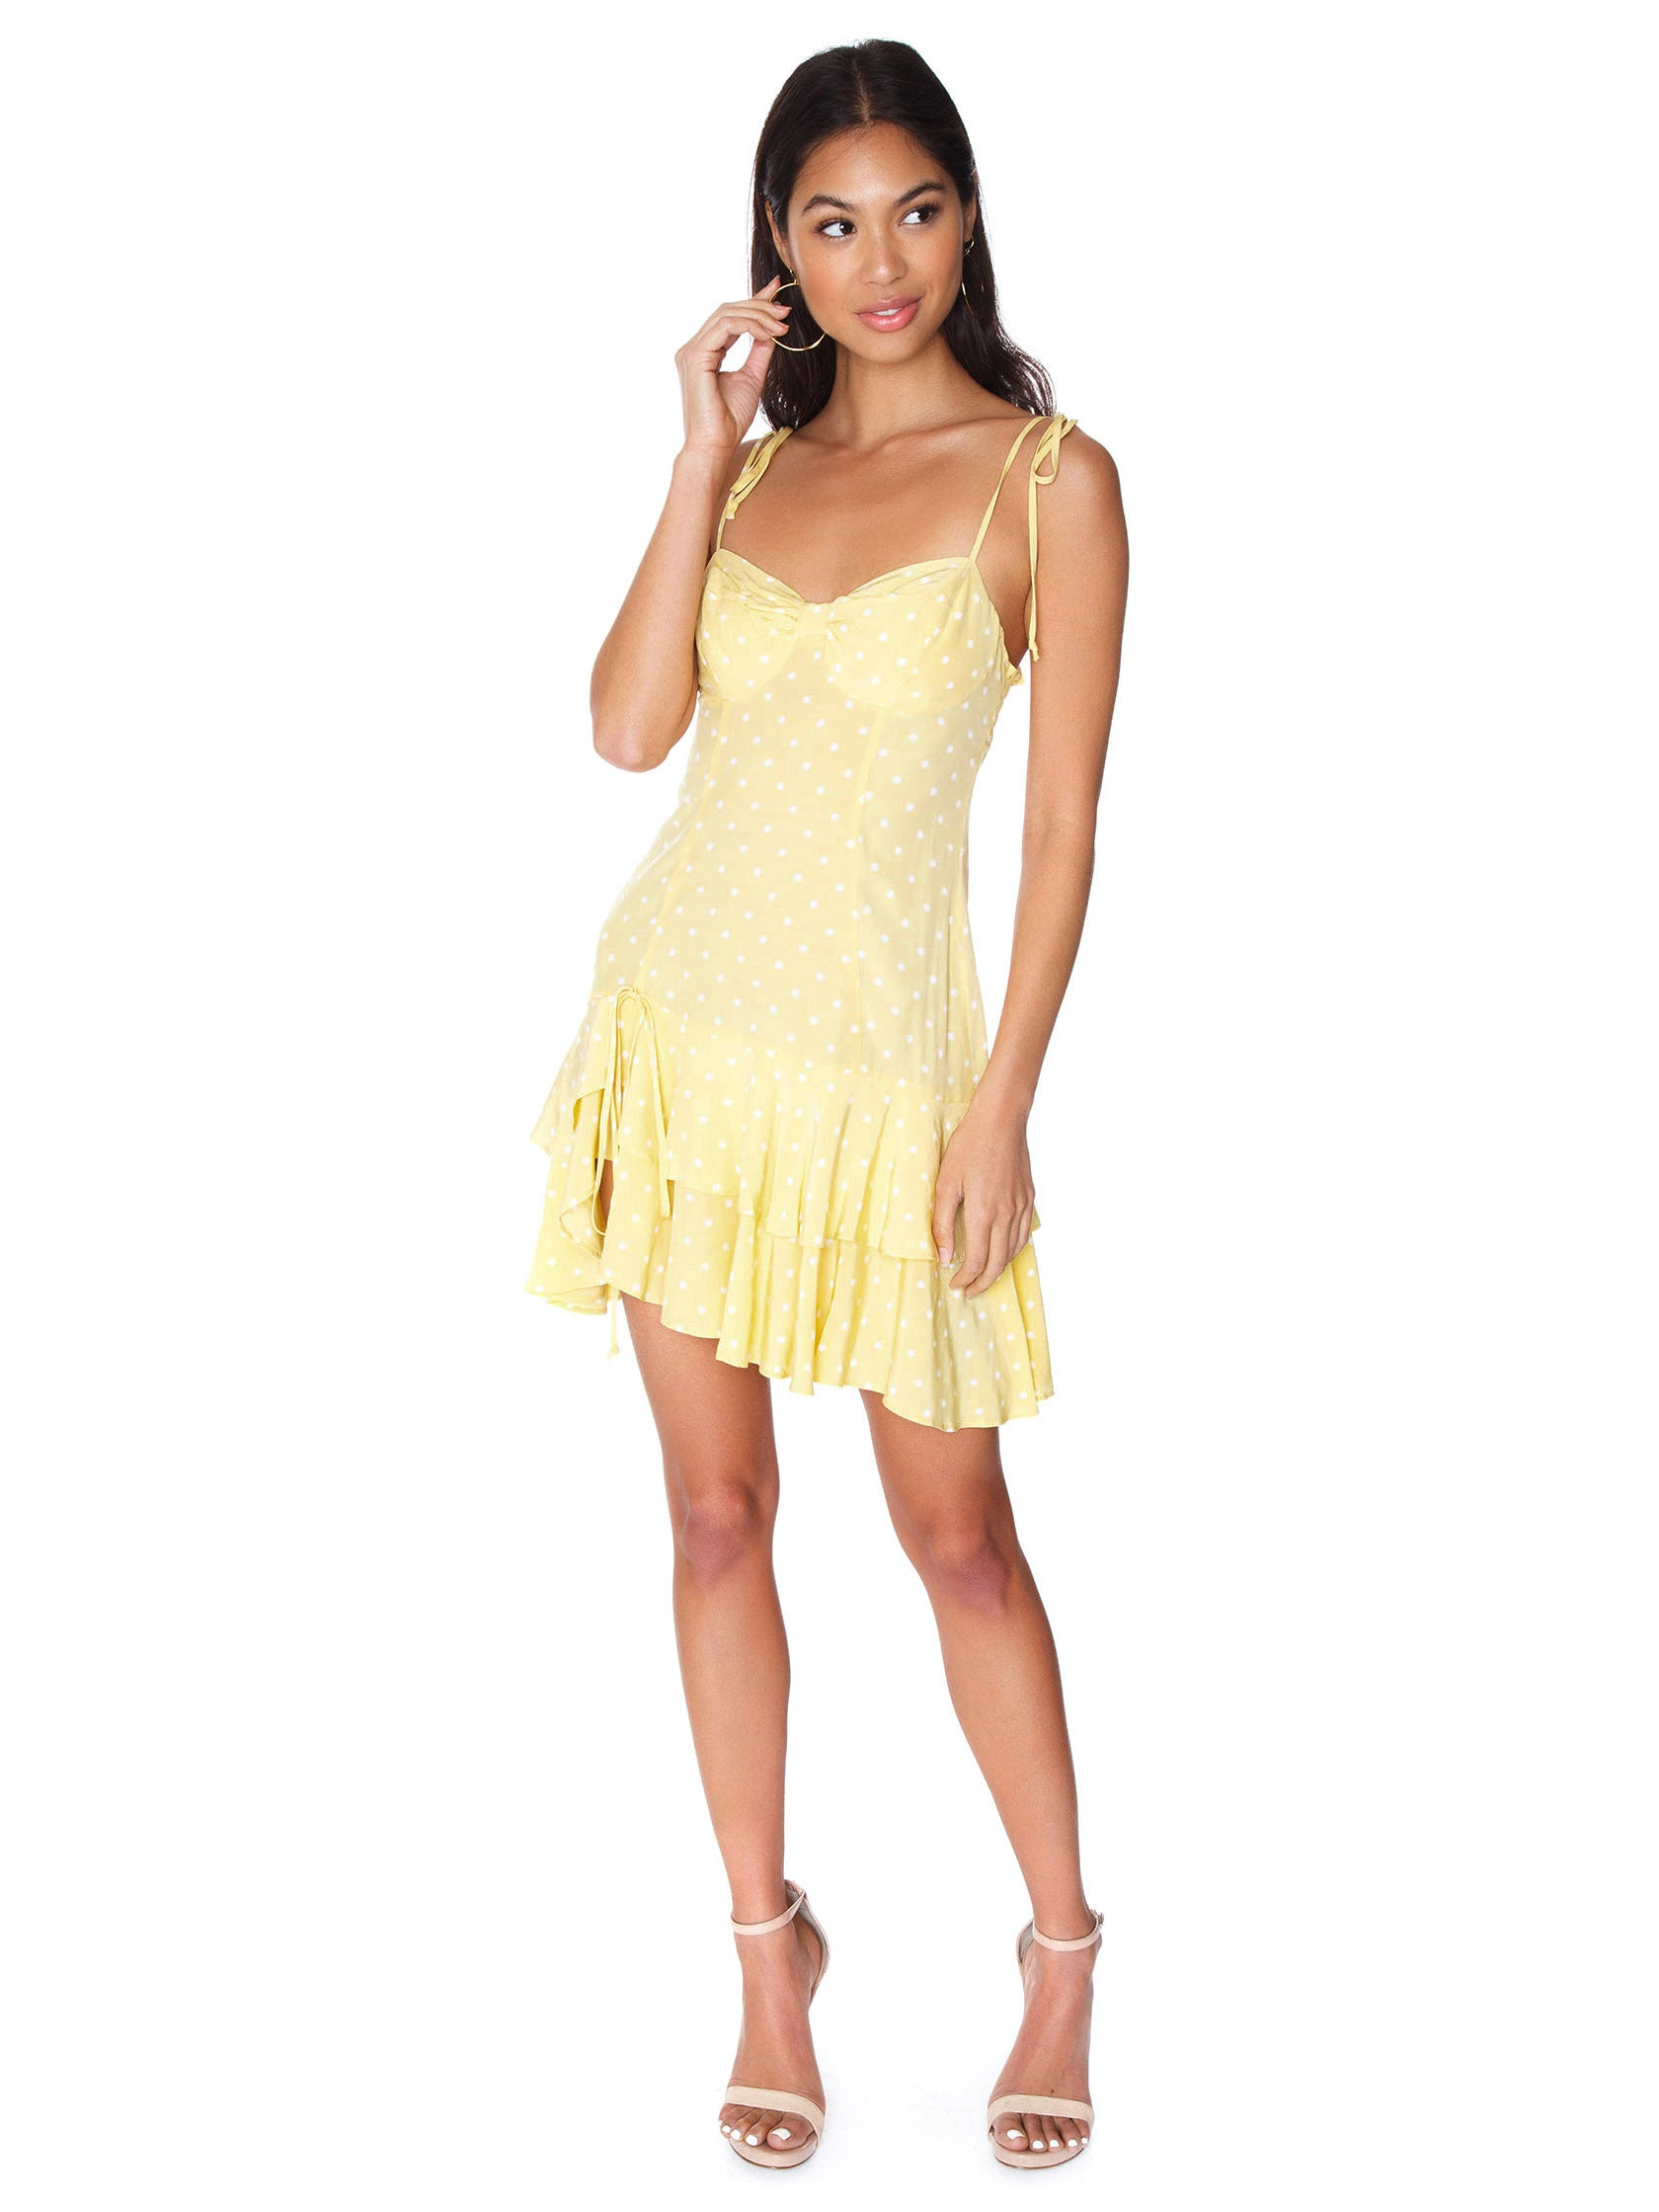 Girl outfit in a dress rental from For Love & Lemons called Limoncello Tiered Ruffle Dress